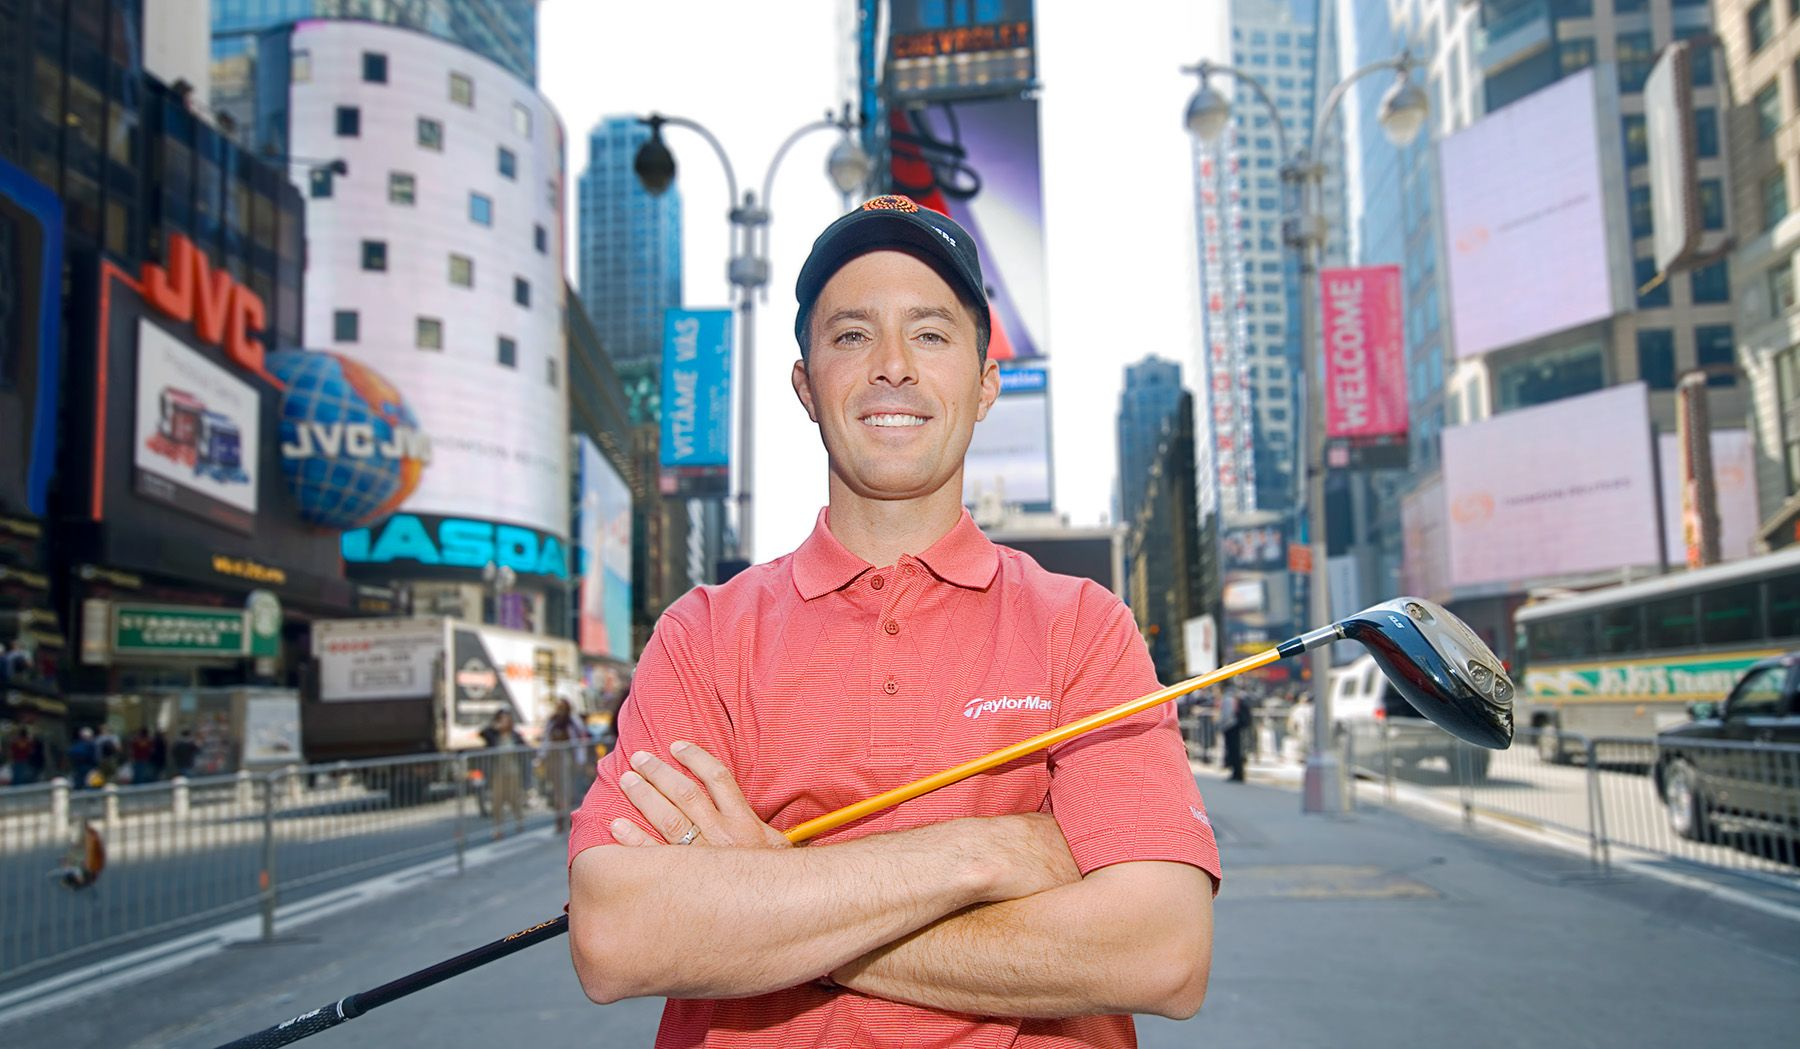 Golf Pro in Times Square